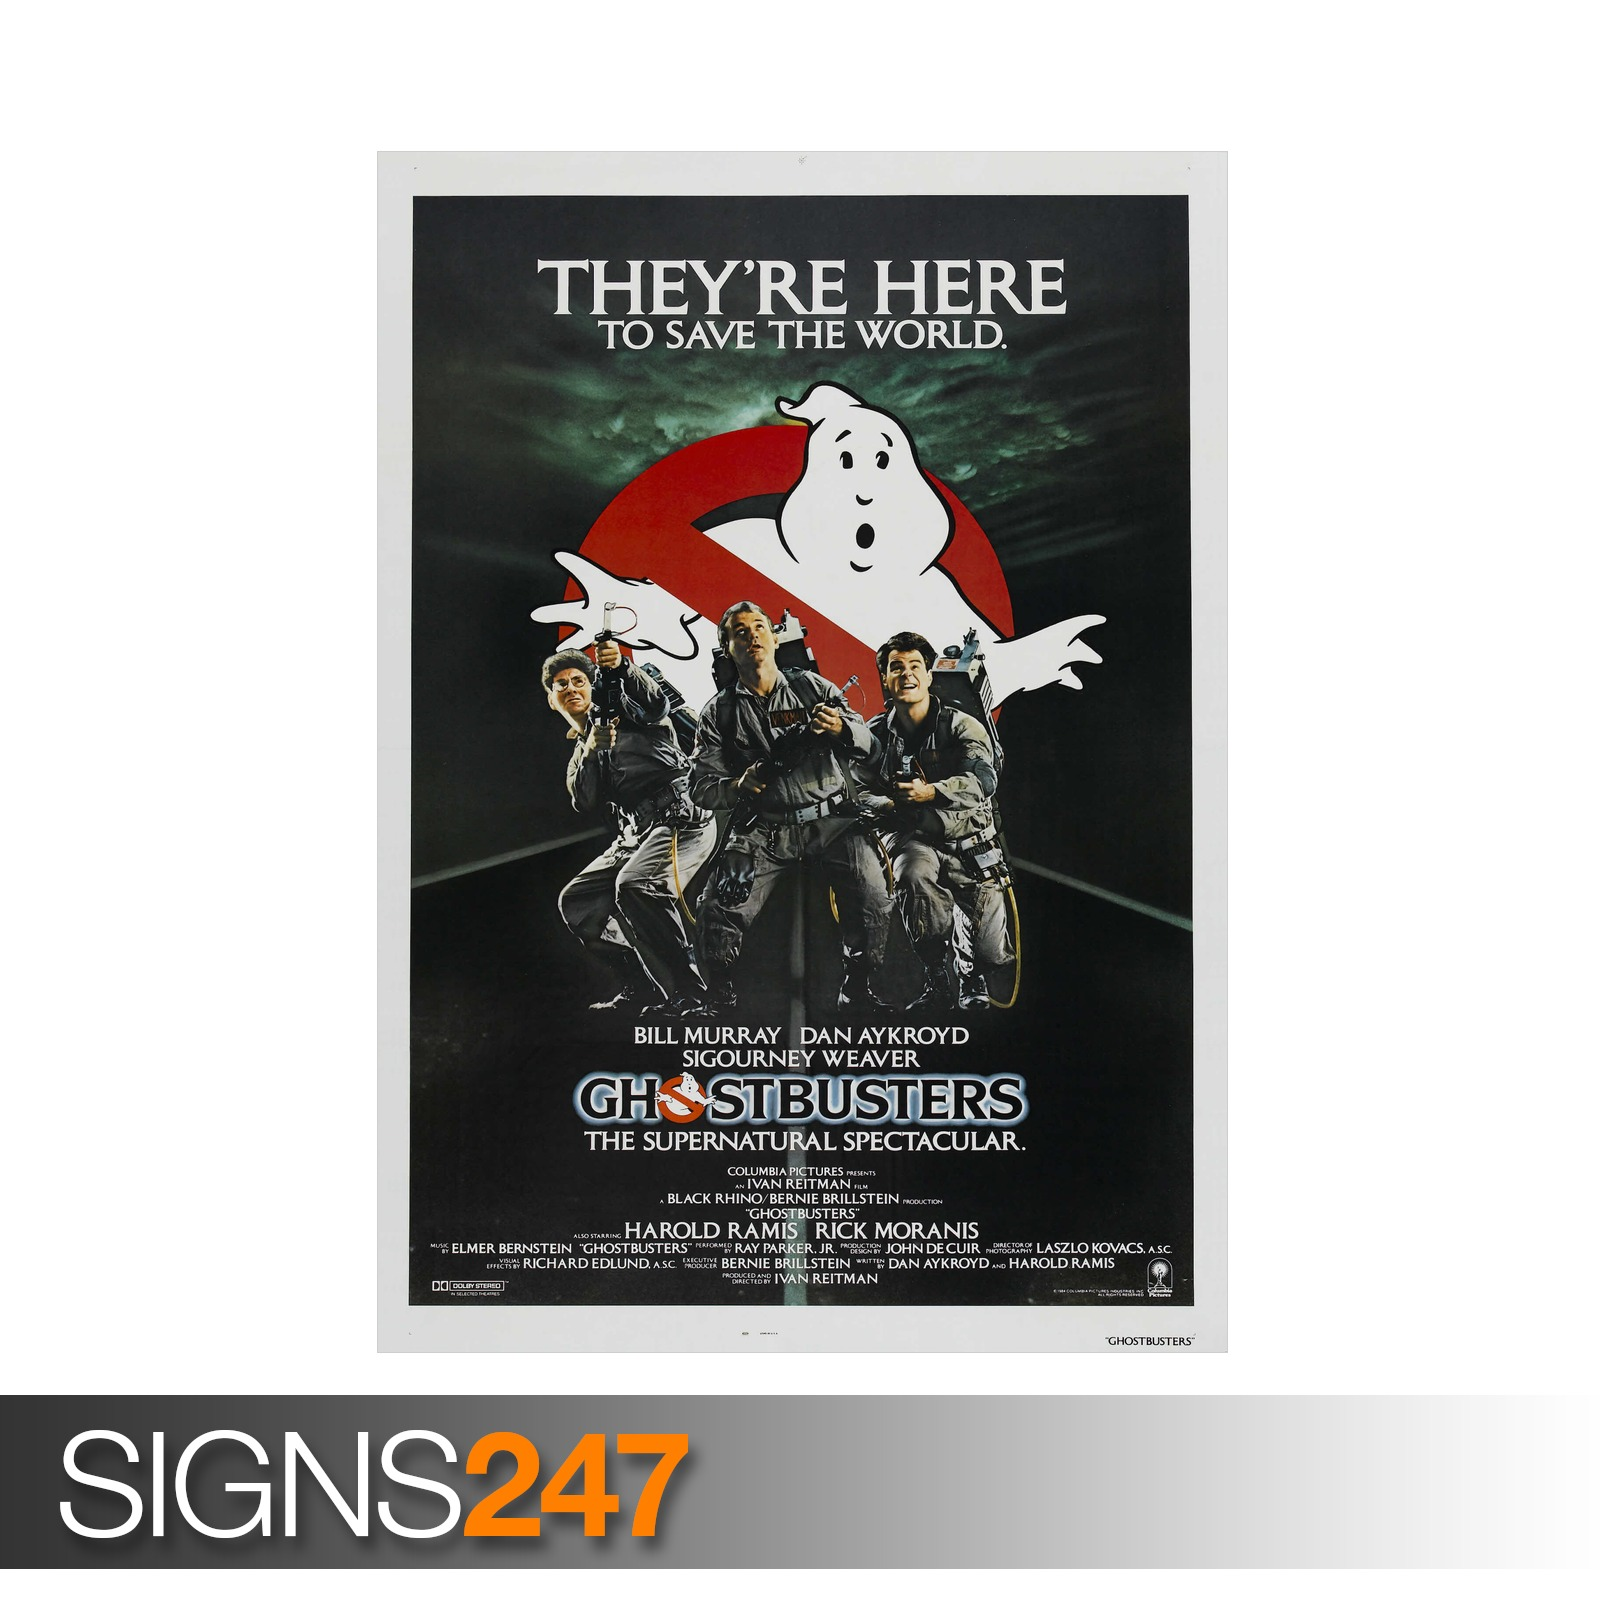 GHOSTBUSTERS-CLASSIC-80S-ZZ040-MOVIE-POSTER-Poster-Print-Art-A0-A1-A2-A3